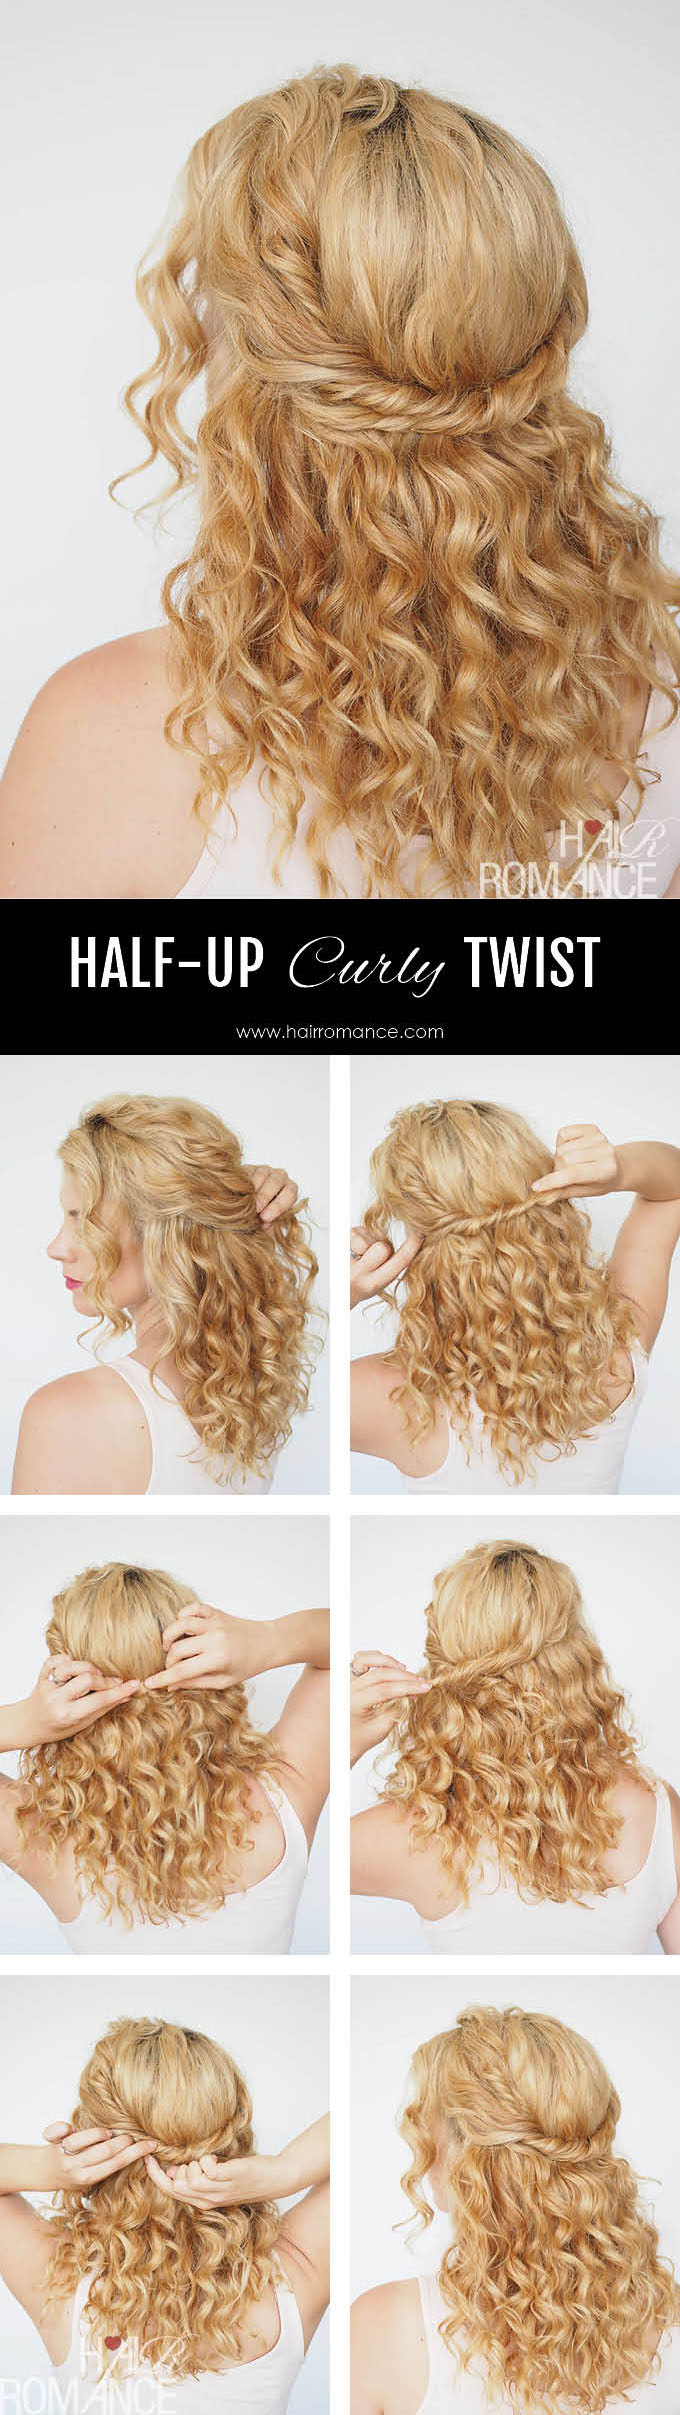 Hair Romance - chic and simple half up twist tutorial